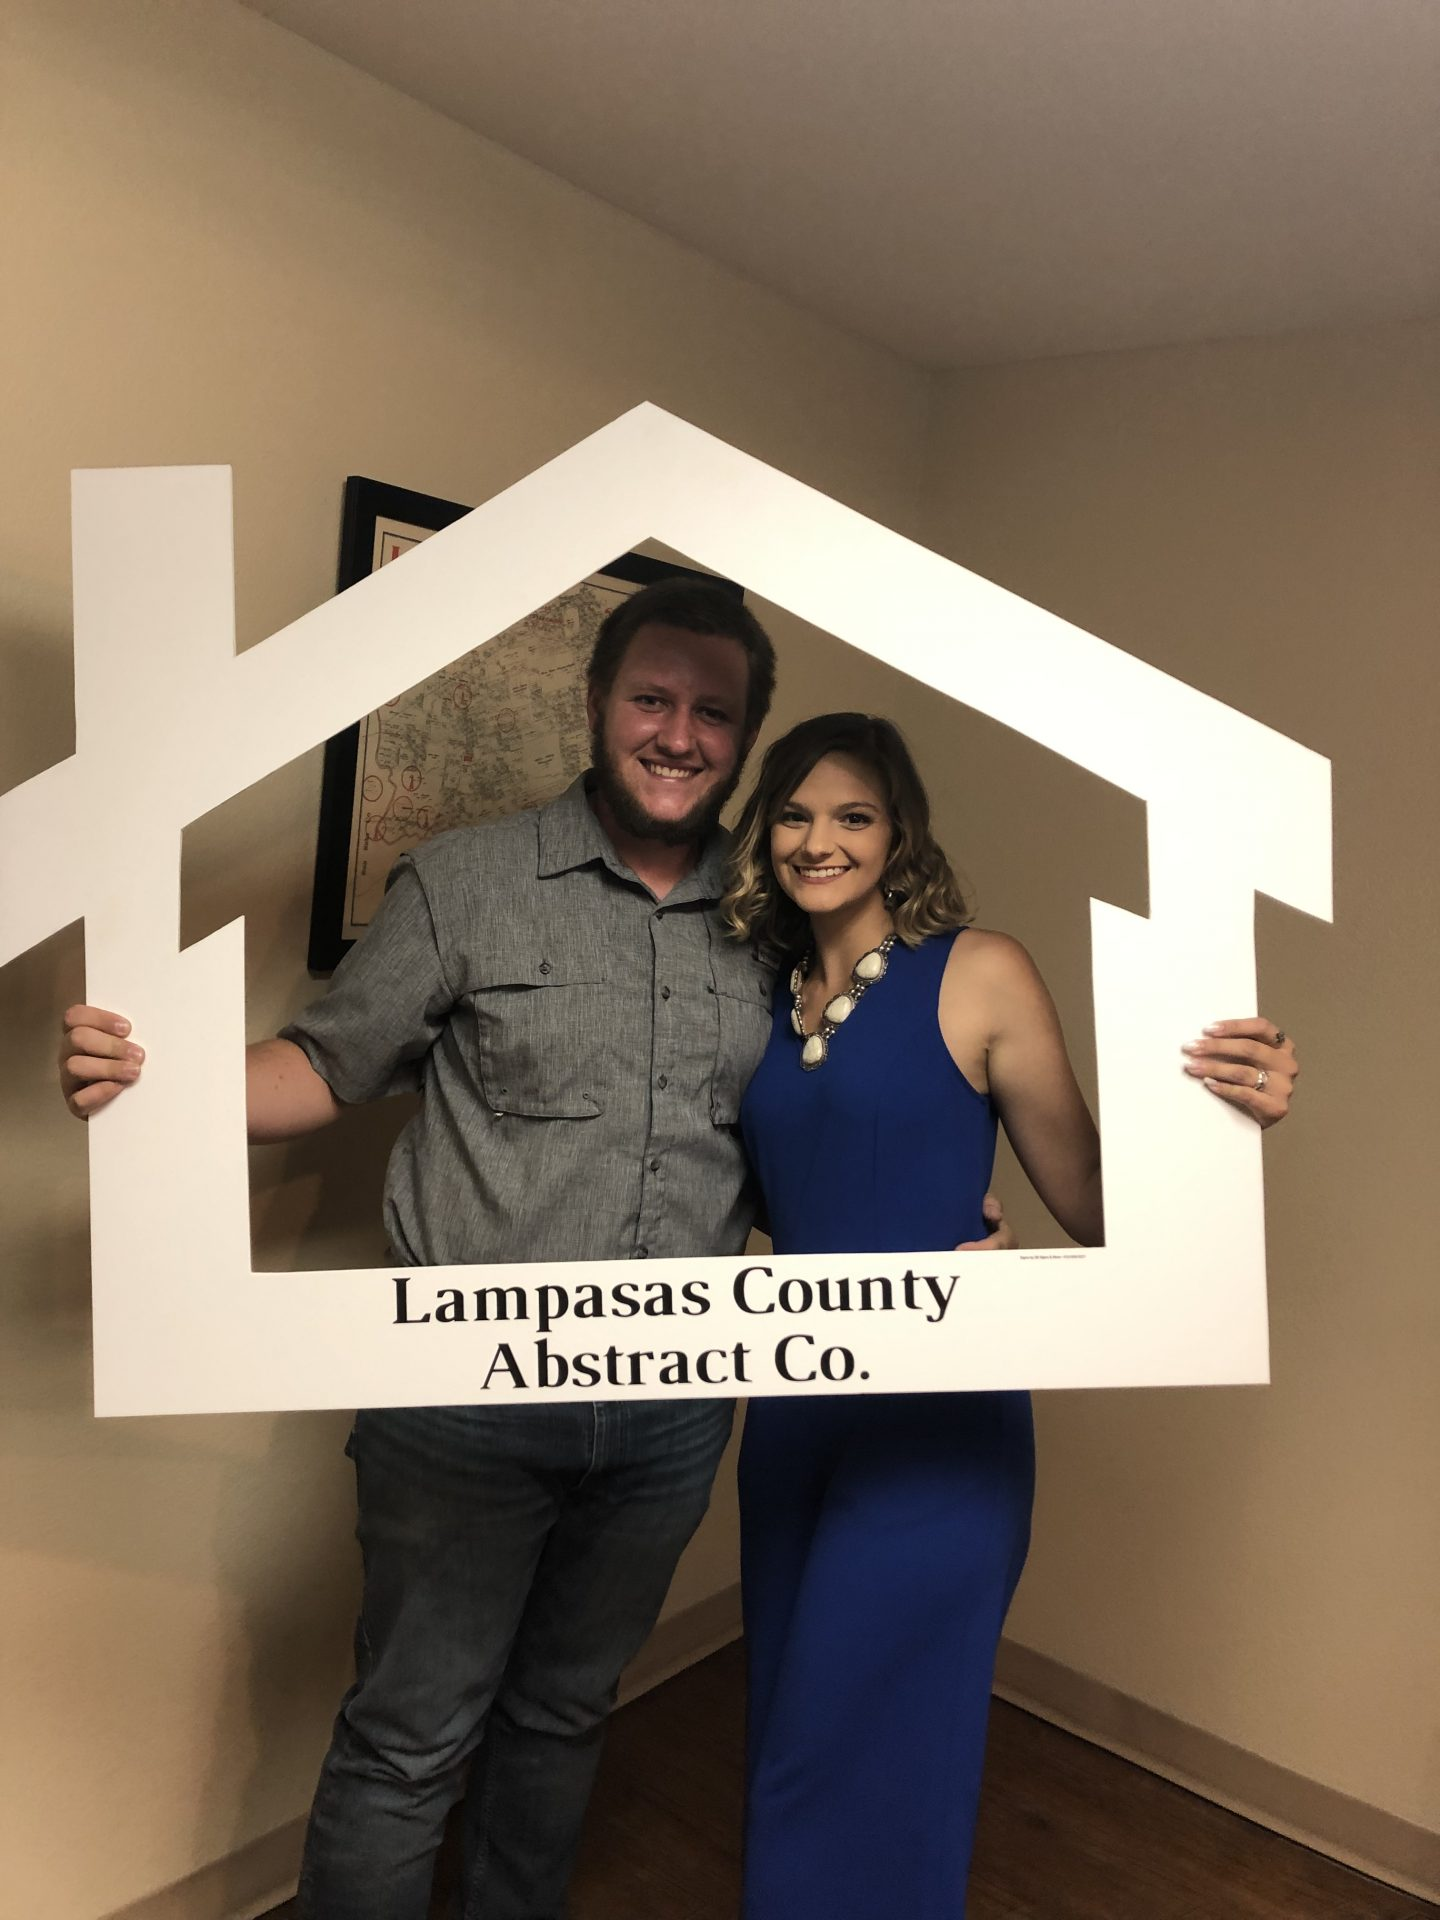 A man and woman holding a Lampasas County Abstract Co. sign.